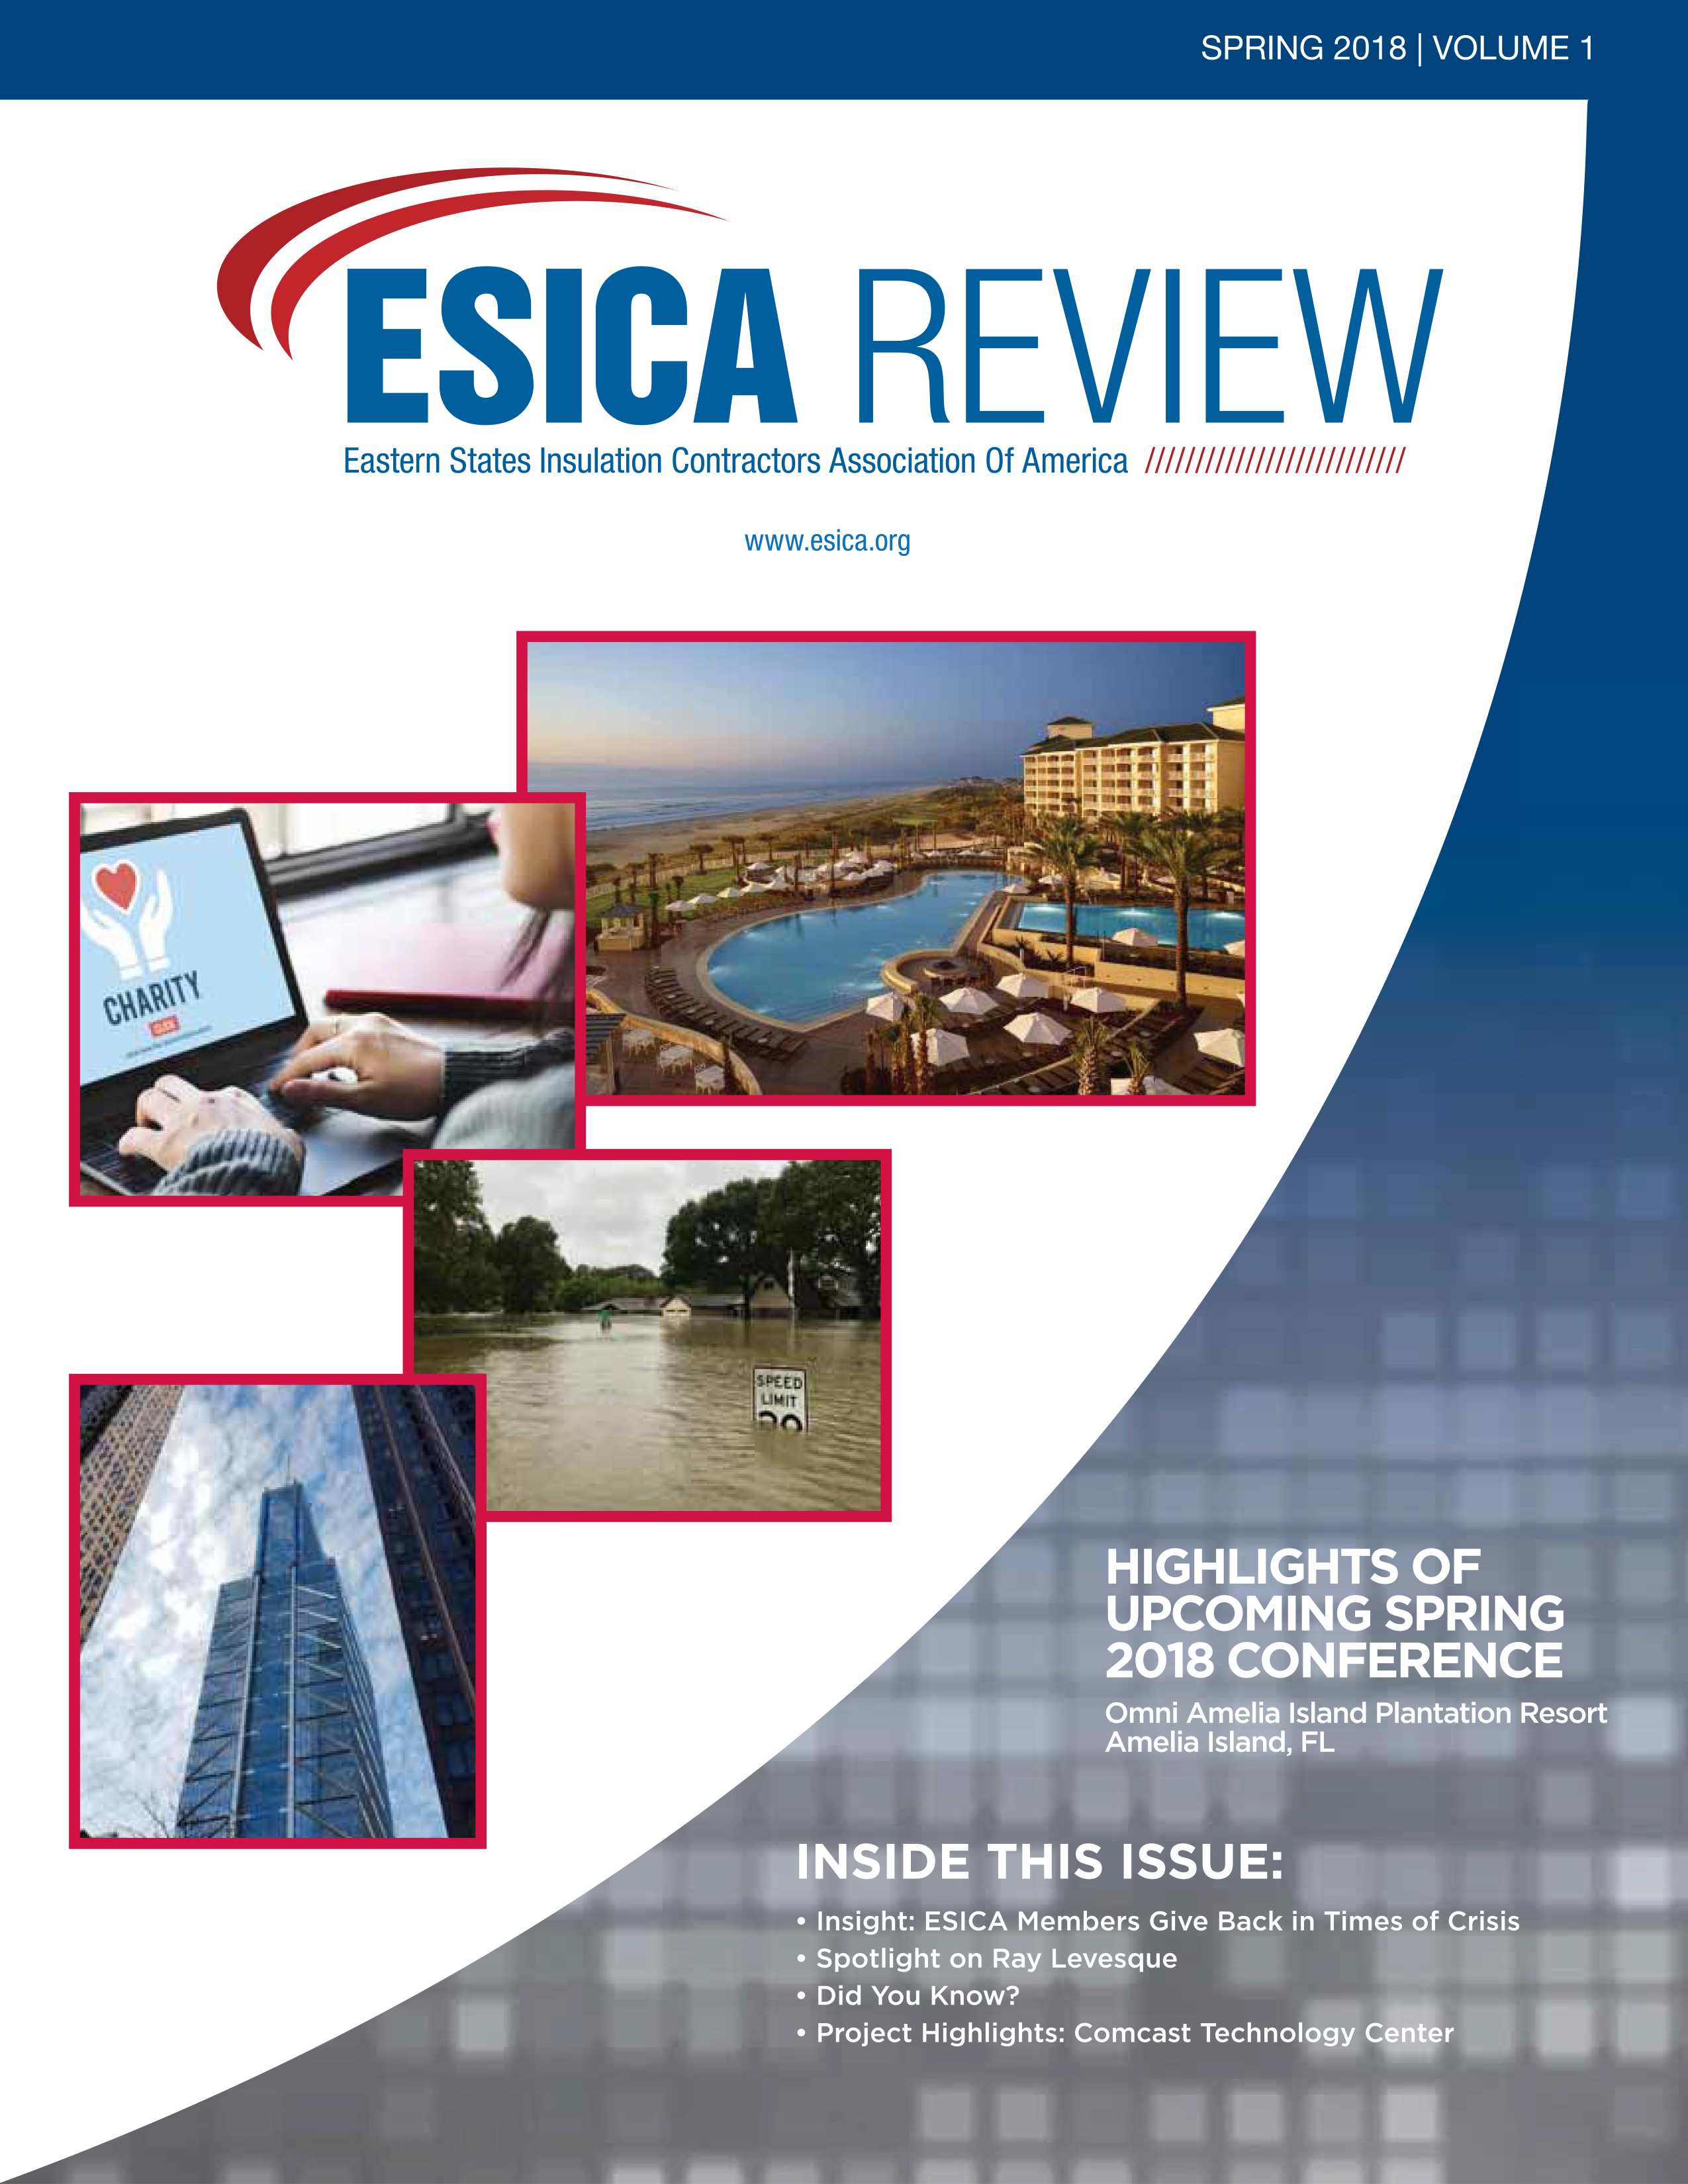 ESICA Review Spring 2018 Volume 1